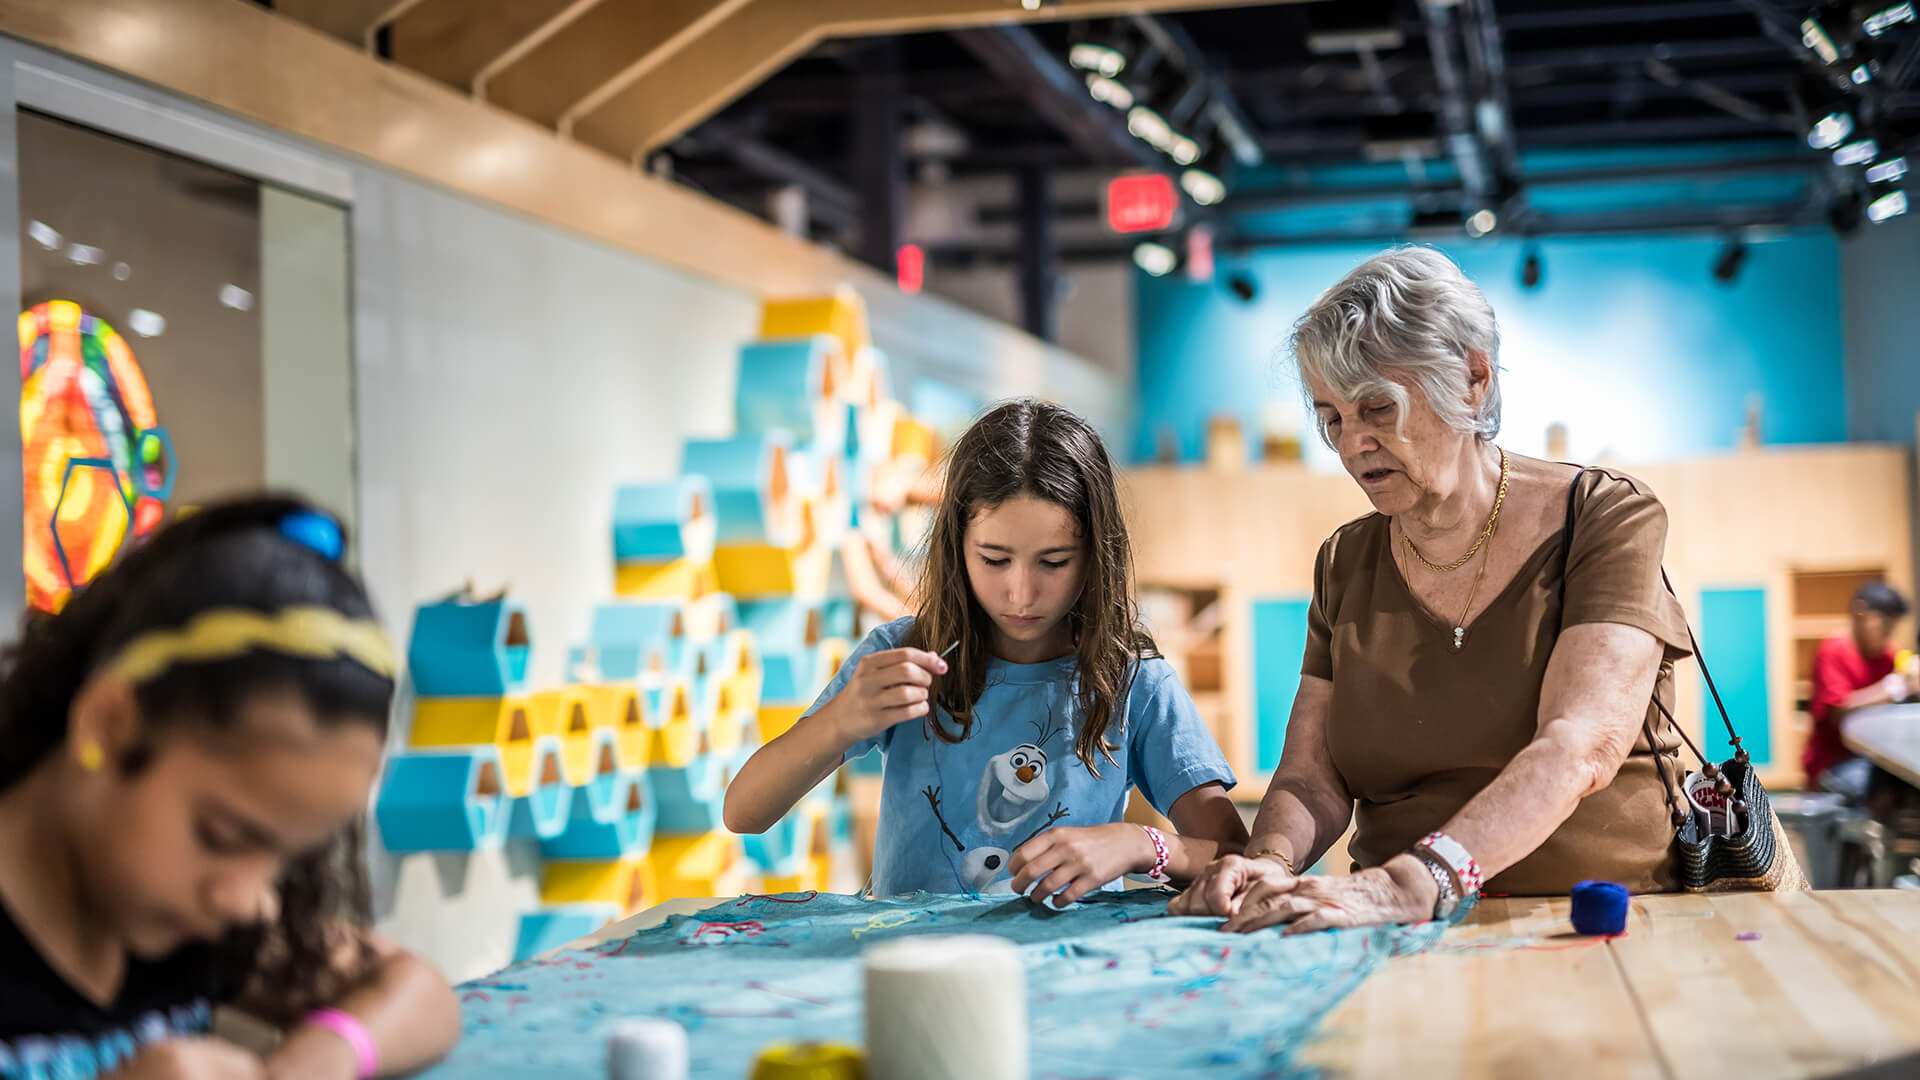 A grandmother and child practice sewing together in The Hive: A Makerspace.